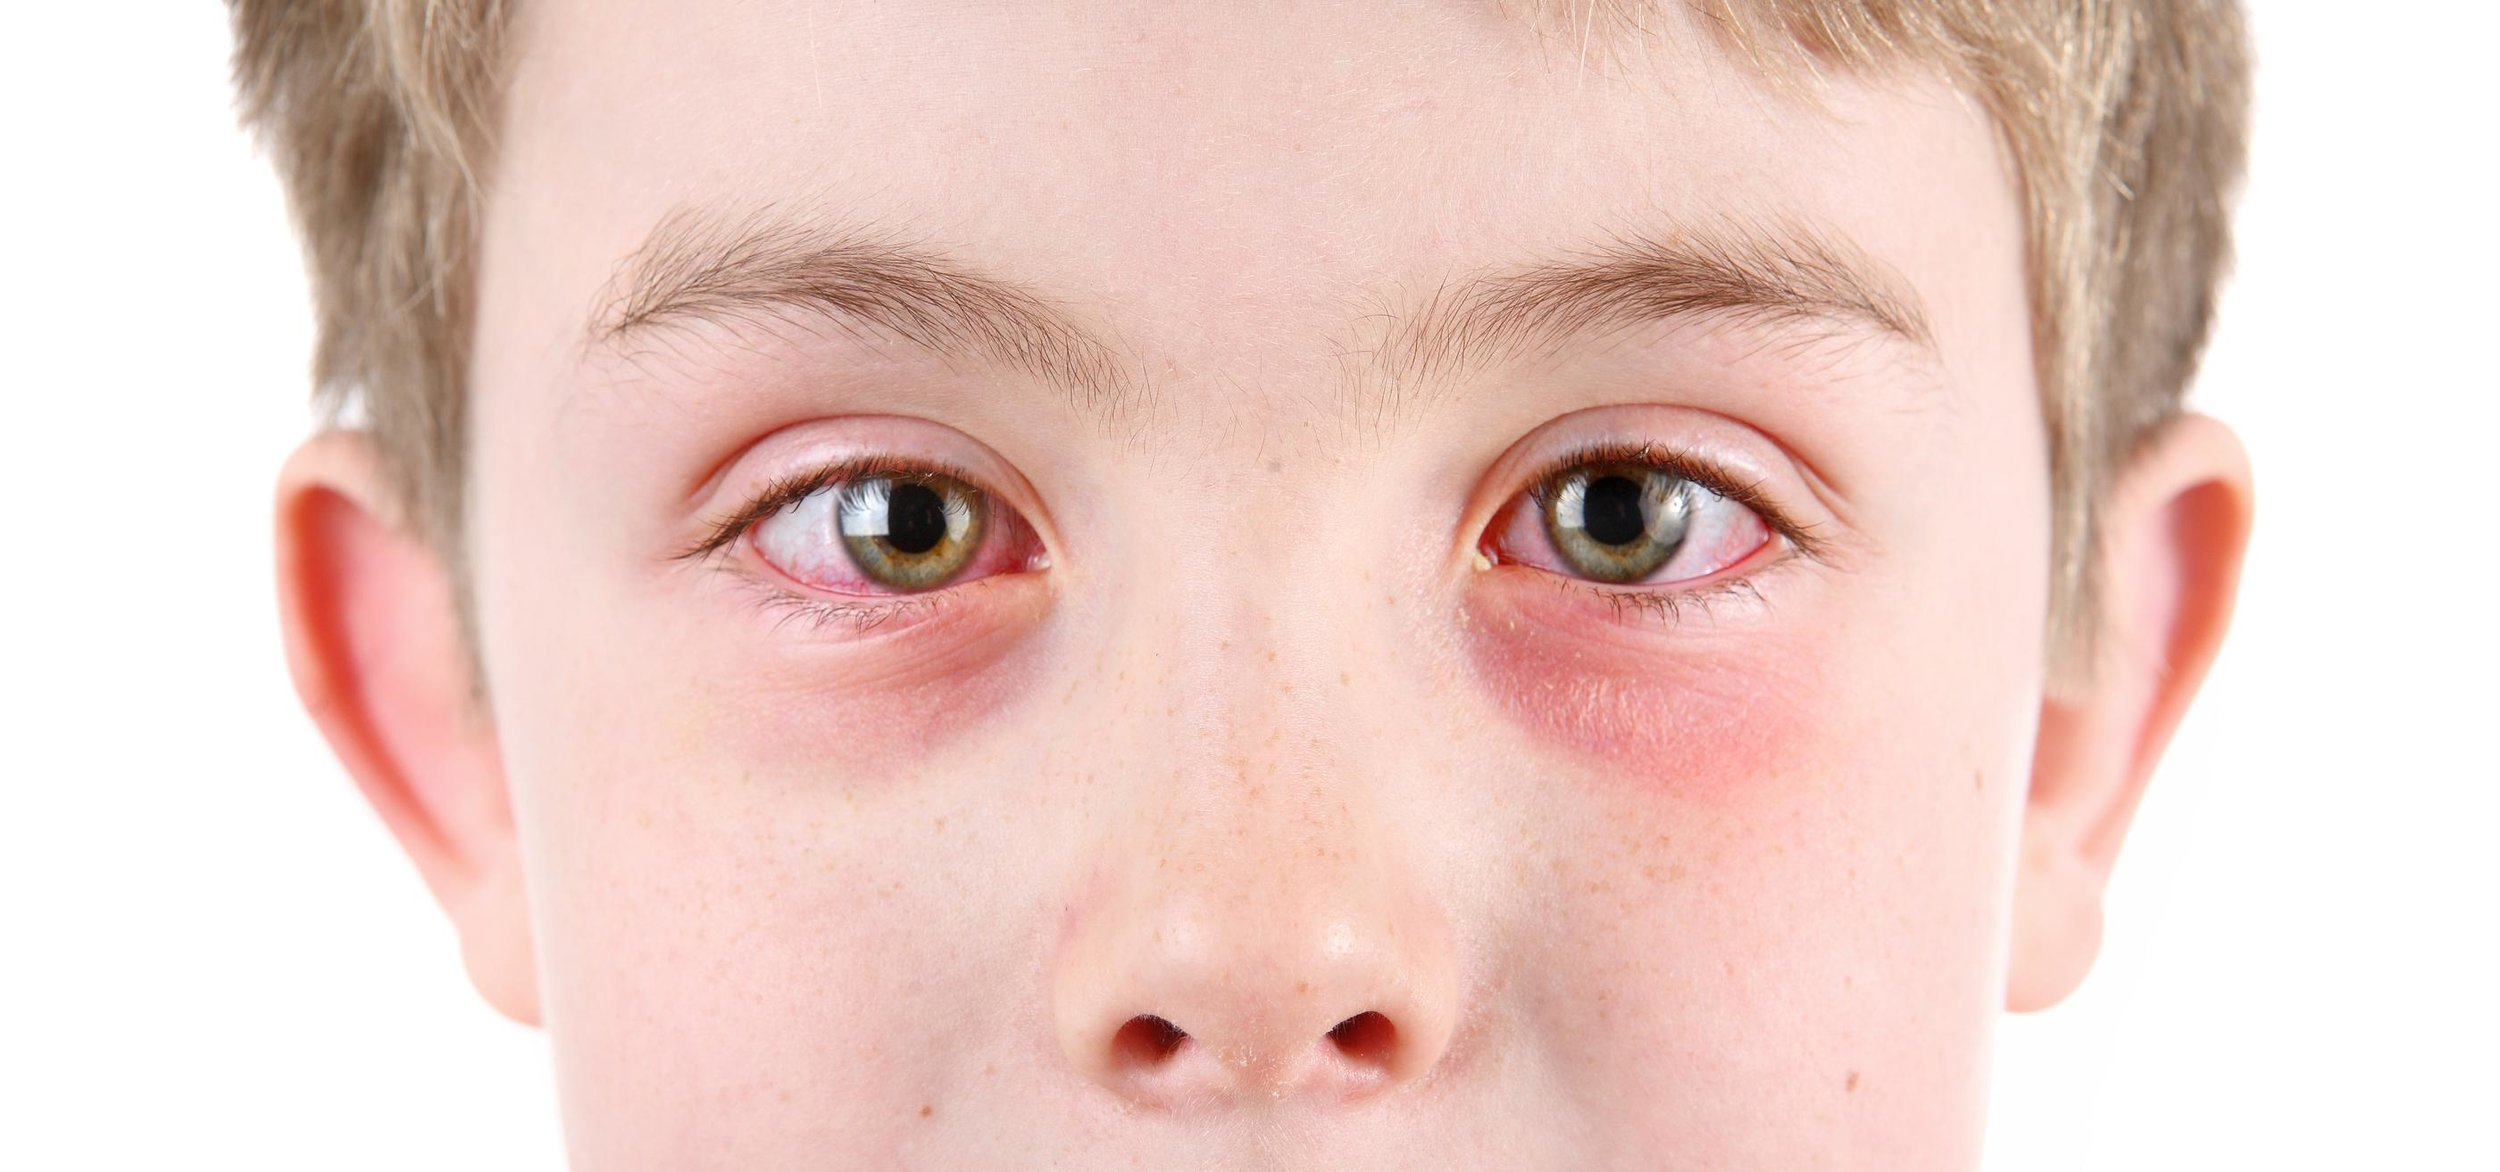 An Example of Allergic conjuctivitis